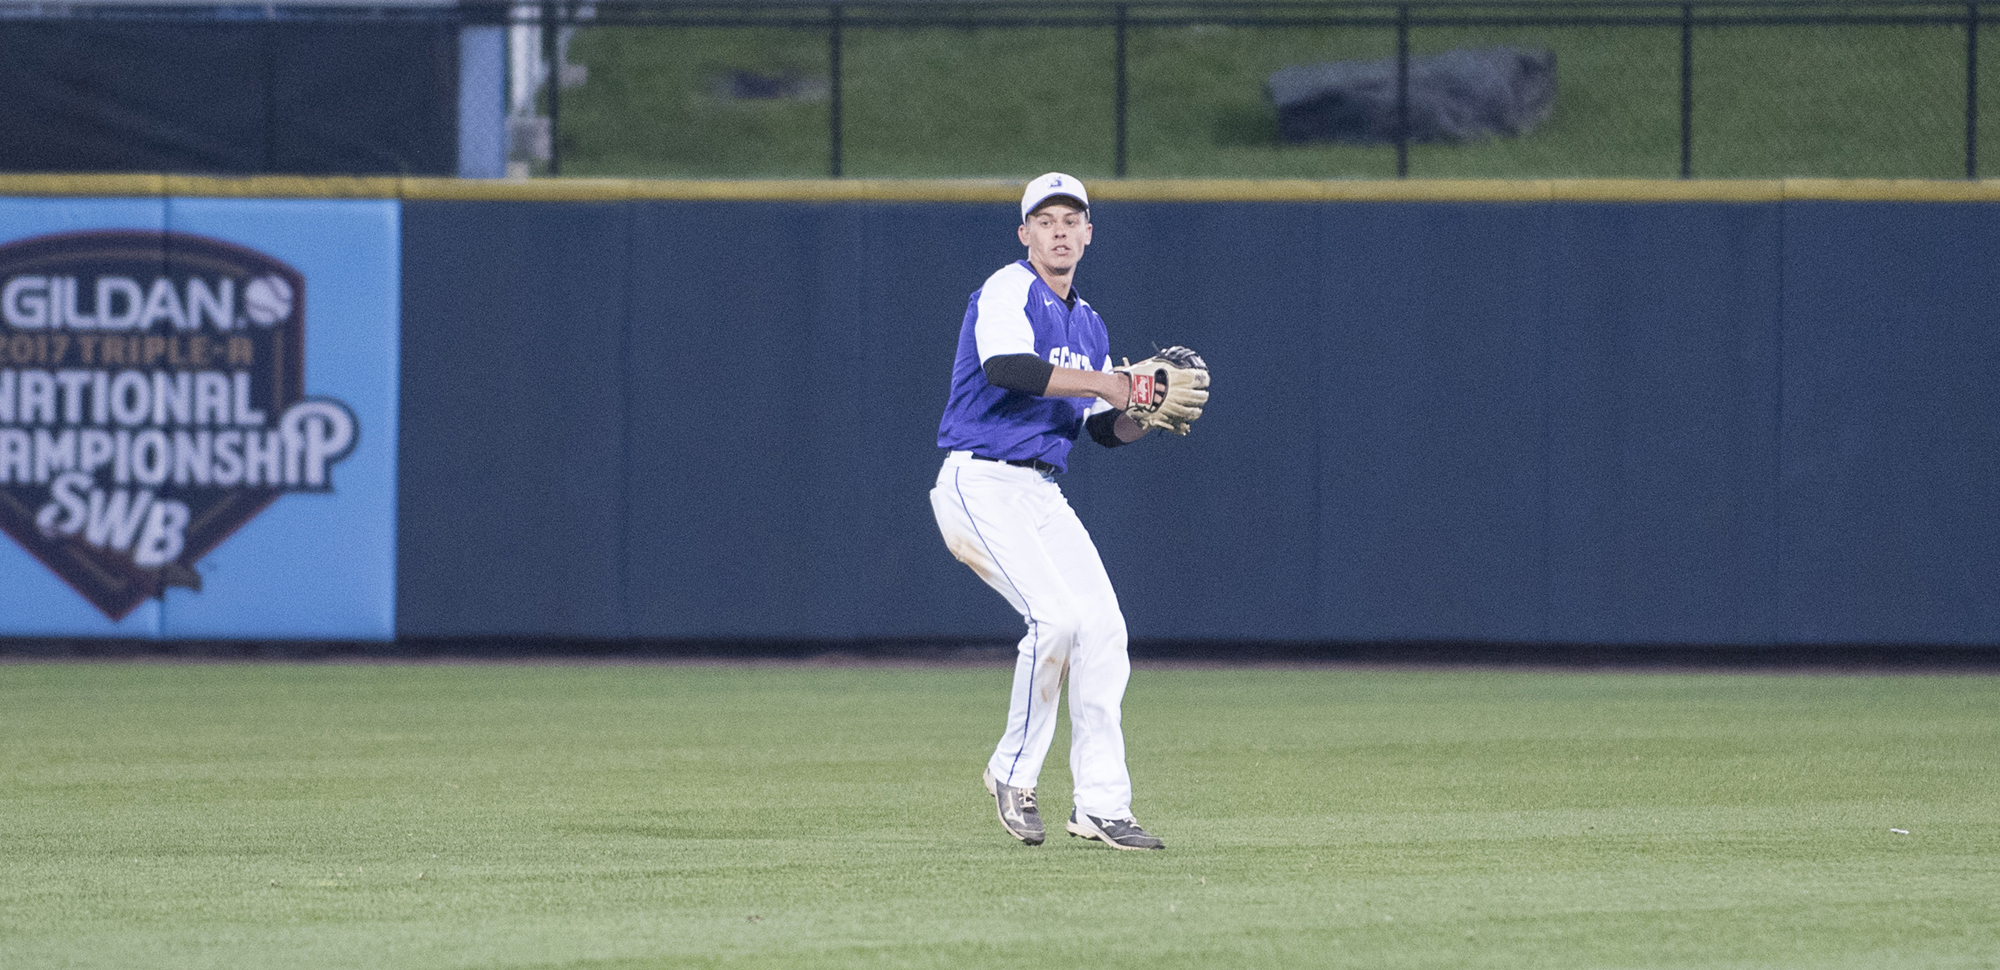 Senior center fielder Tommy Trotter had four hits, including two triples, and drove in three runs on Monday.